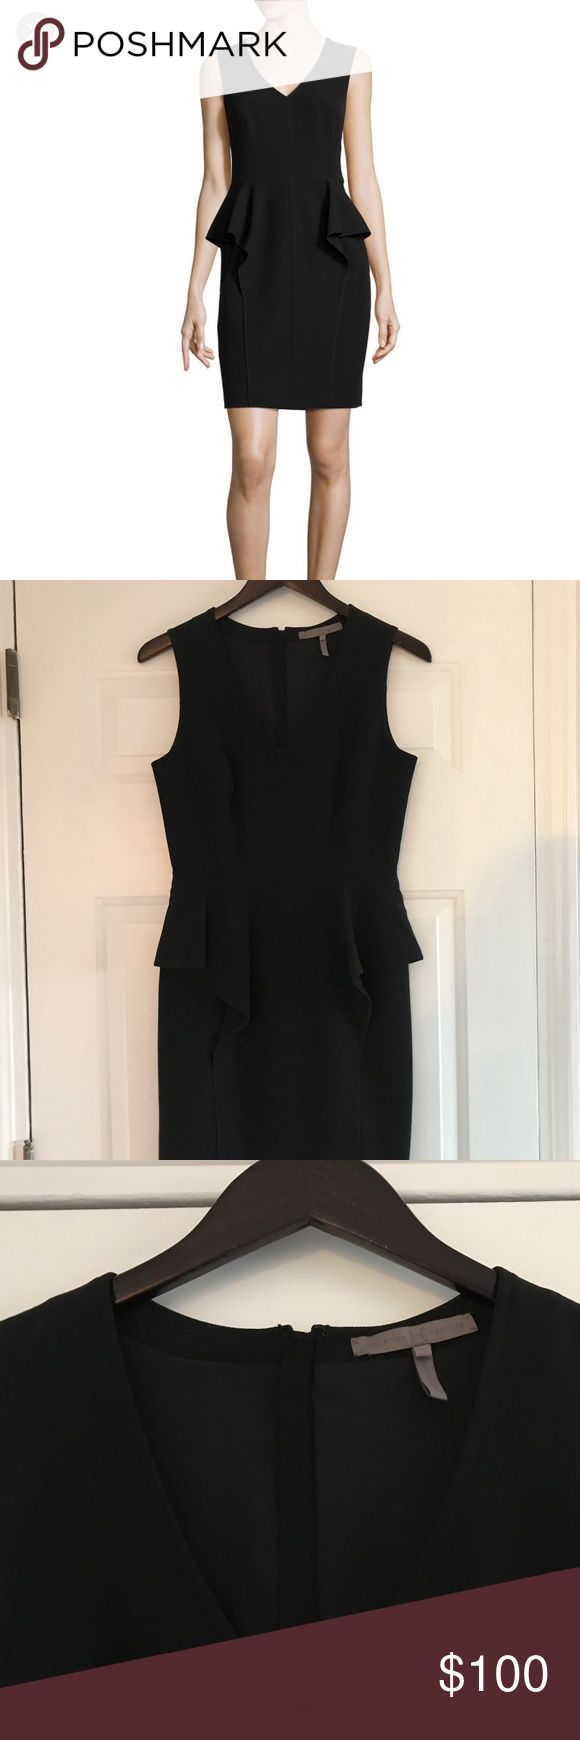 Halston Heritage Black Peplum Dress NWOT Never worn, beautiful and sophisticated cocktail dress. A flattering, flowy peplum around the hips and subtle seaming. Small slit in back. 37.5 inches from top of shoulder to hem, 28.5 inches from armpit to hem. Halston Heritage Dresses